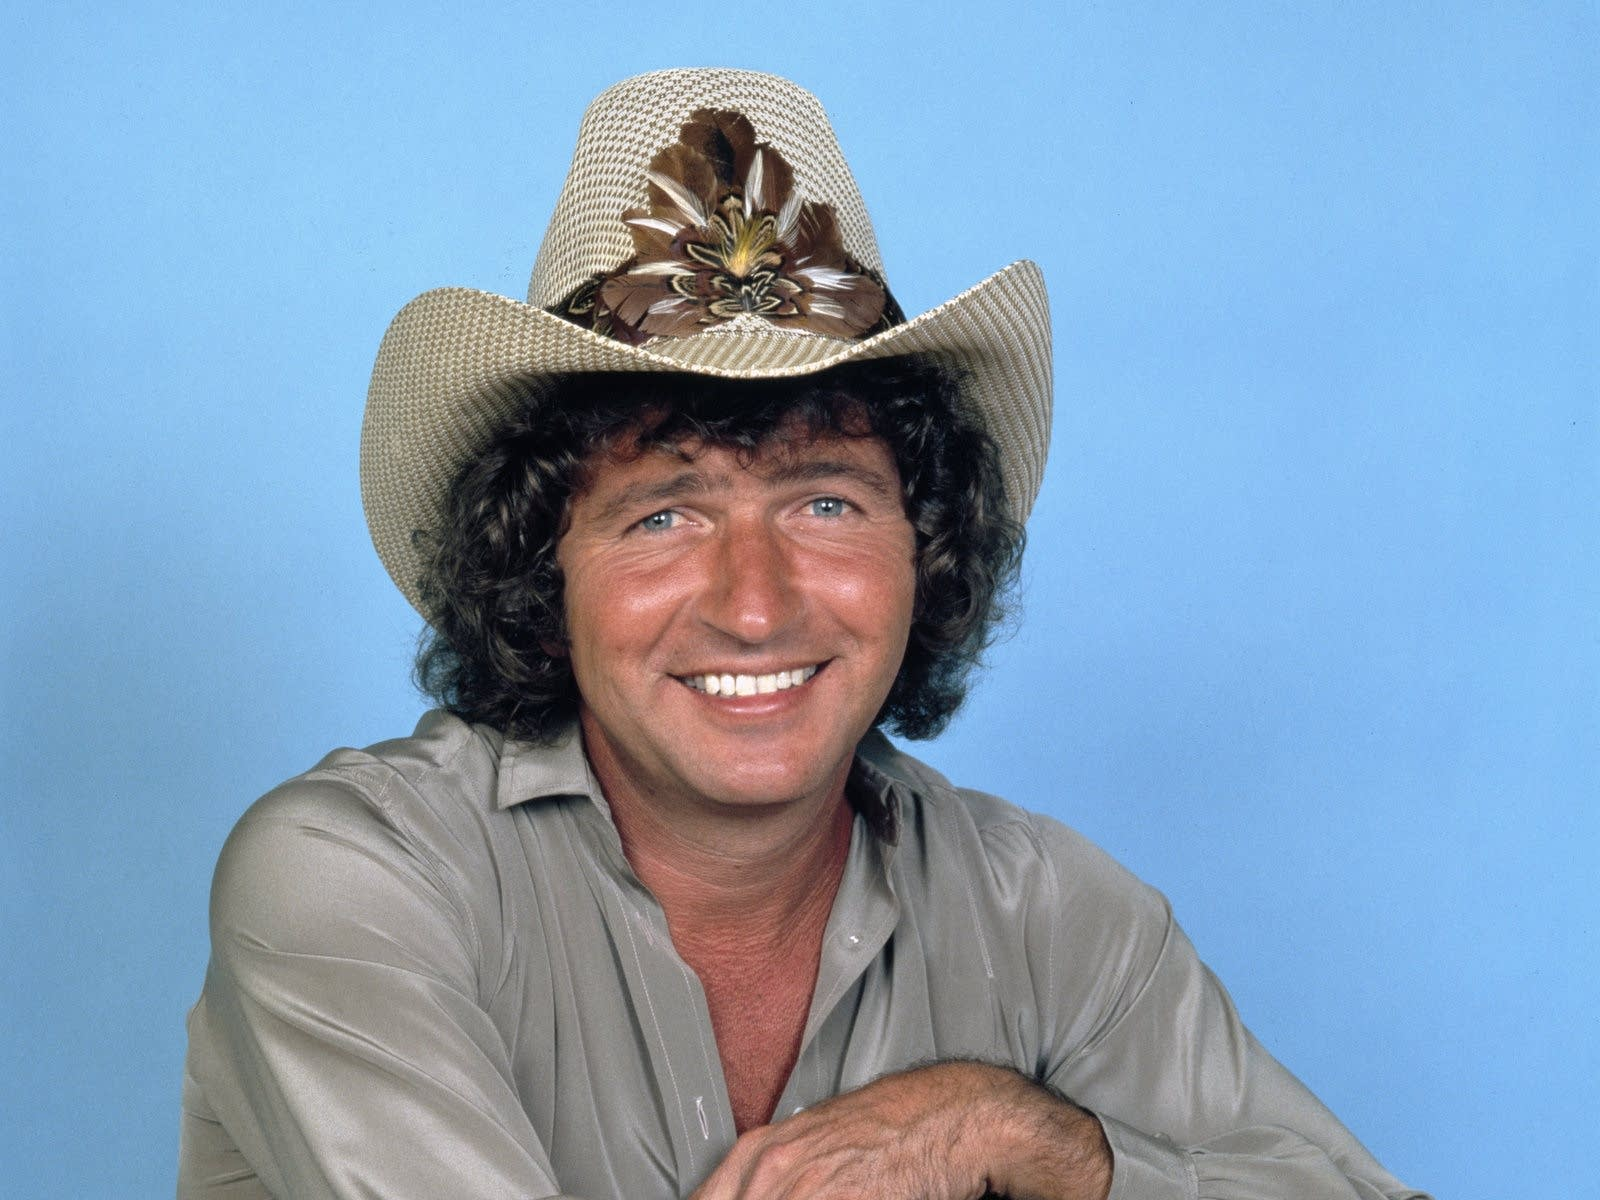 Singer-songwriter Mac Davis in 1981